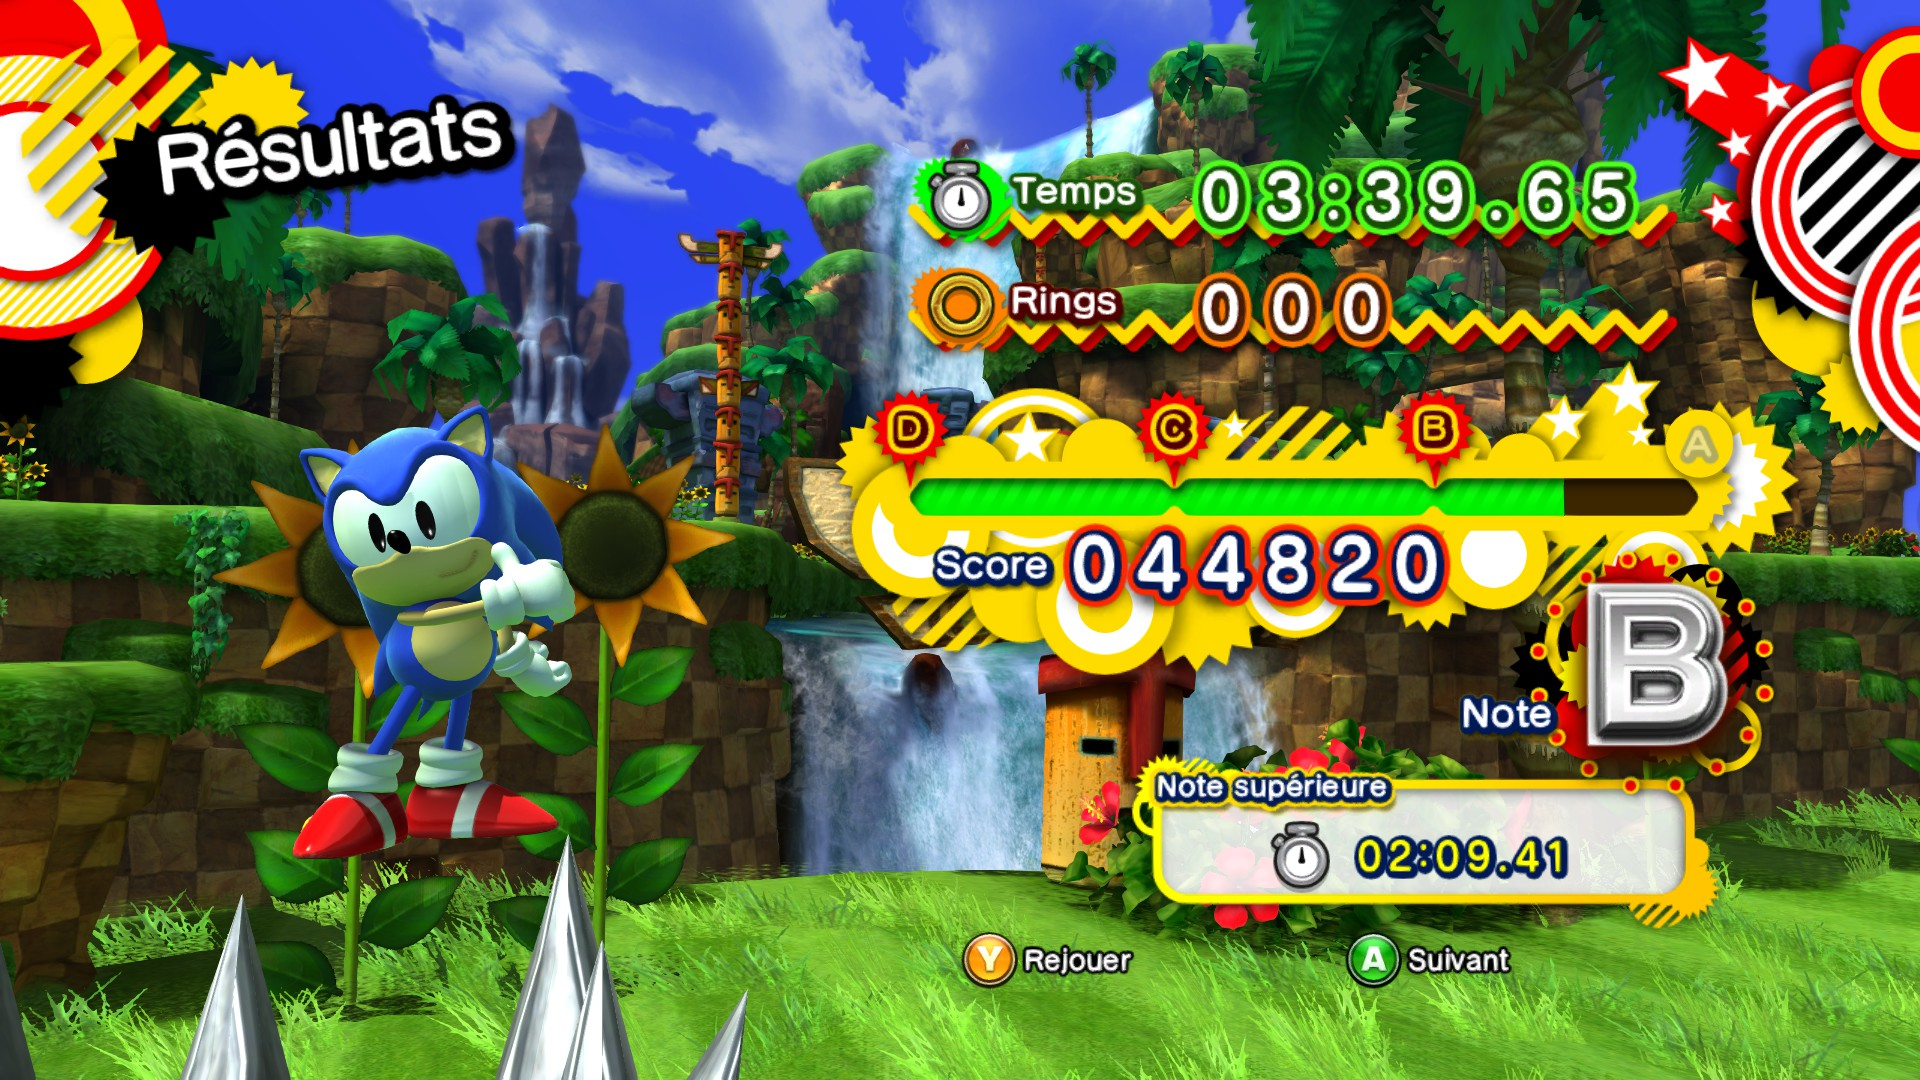 Pictures of Sonic Generations Character Mods - #rock-cafe